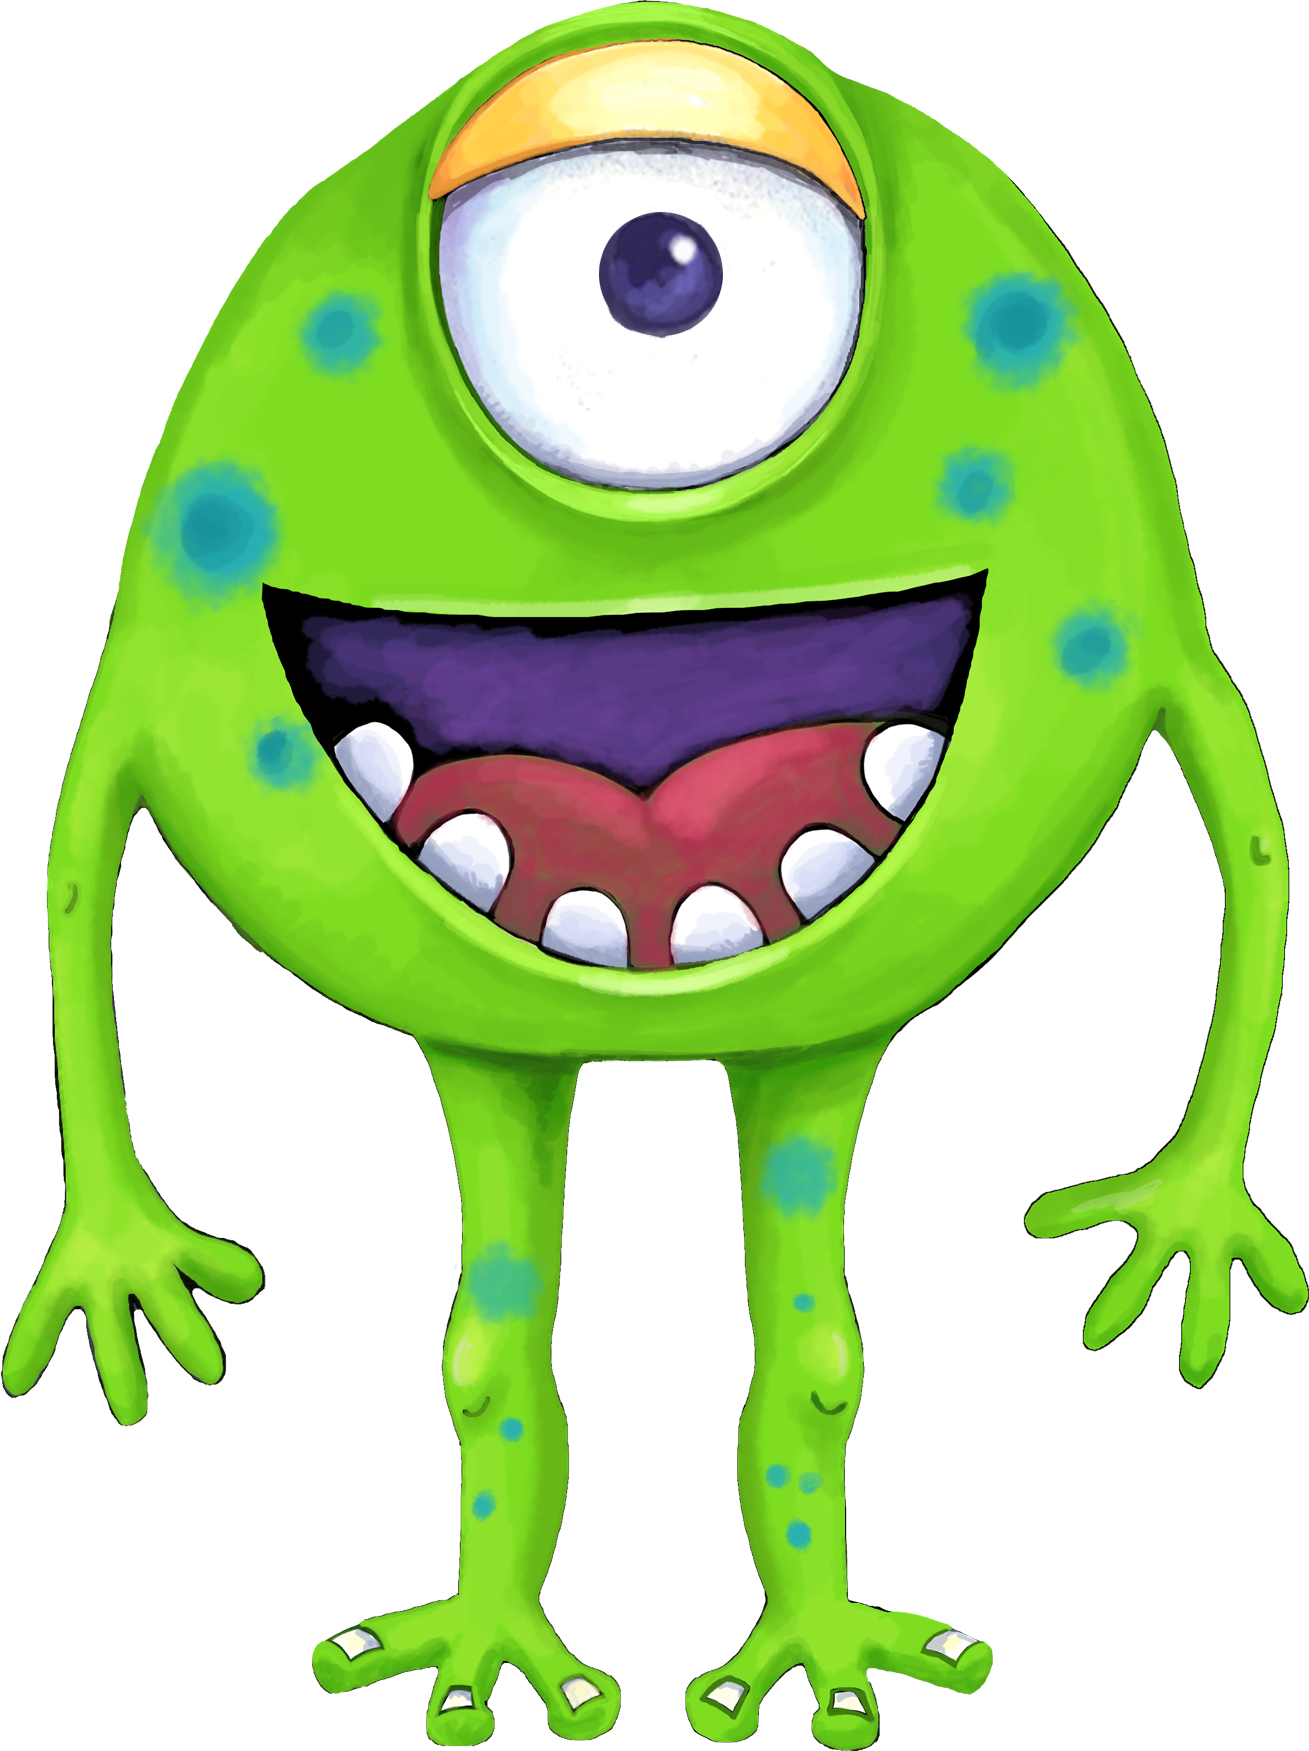 Free green ii monster. Playdough clipart modeling clay